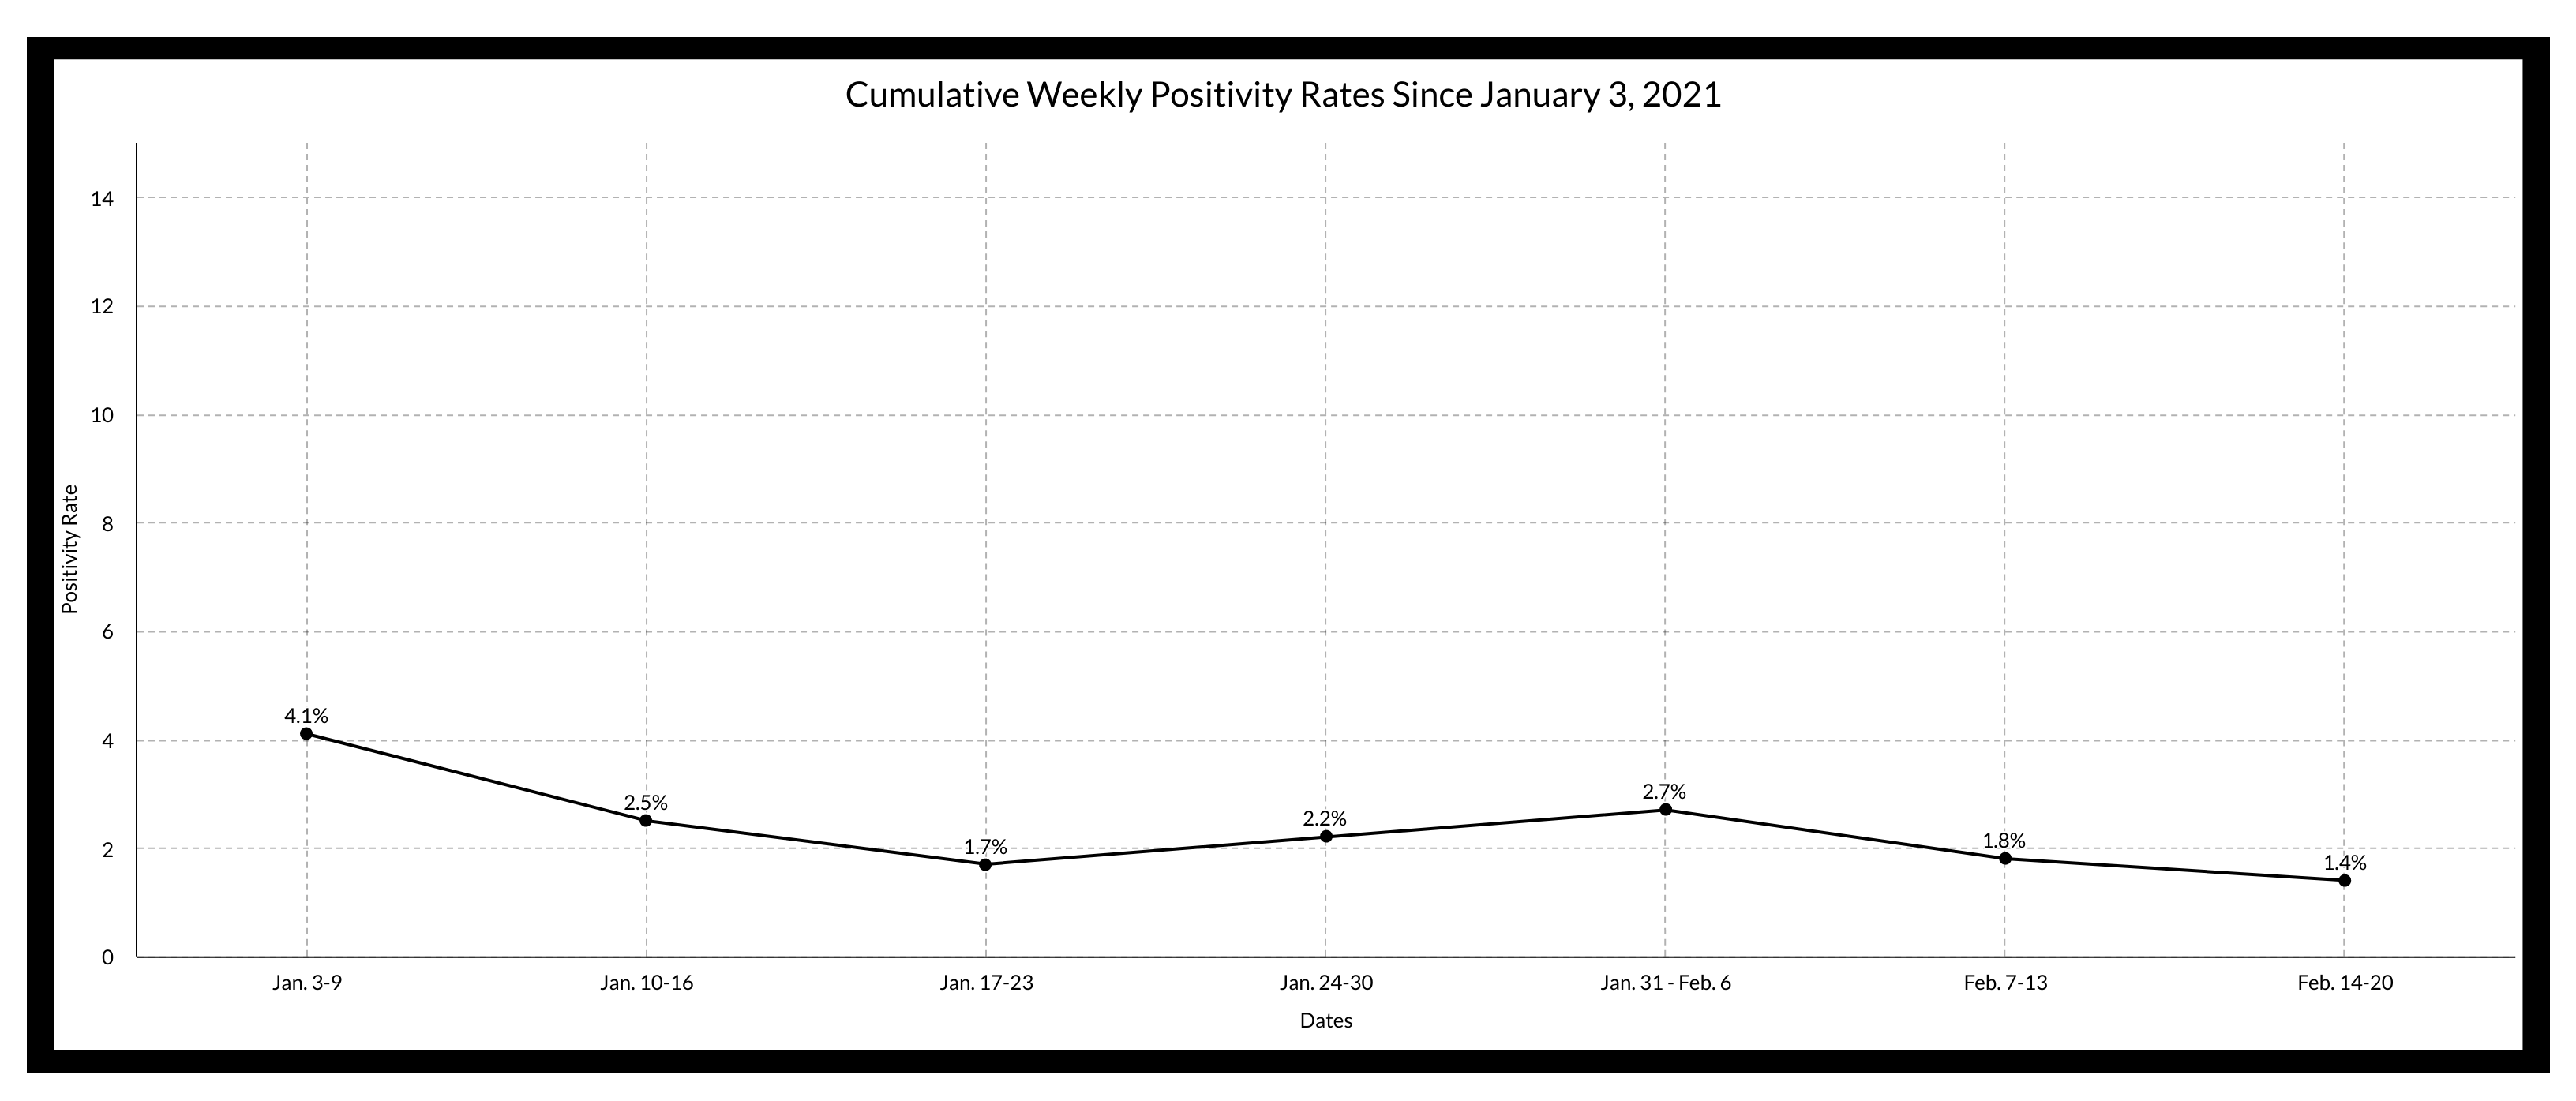 Weekly Positivity Rates Since January 2021